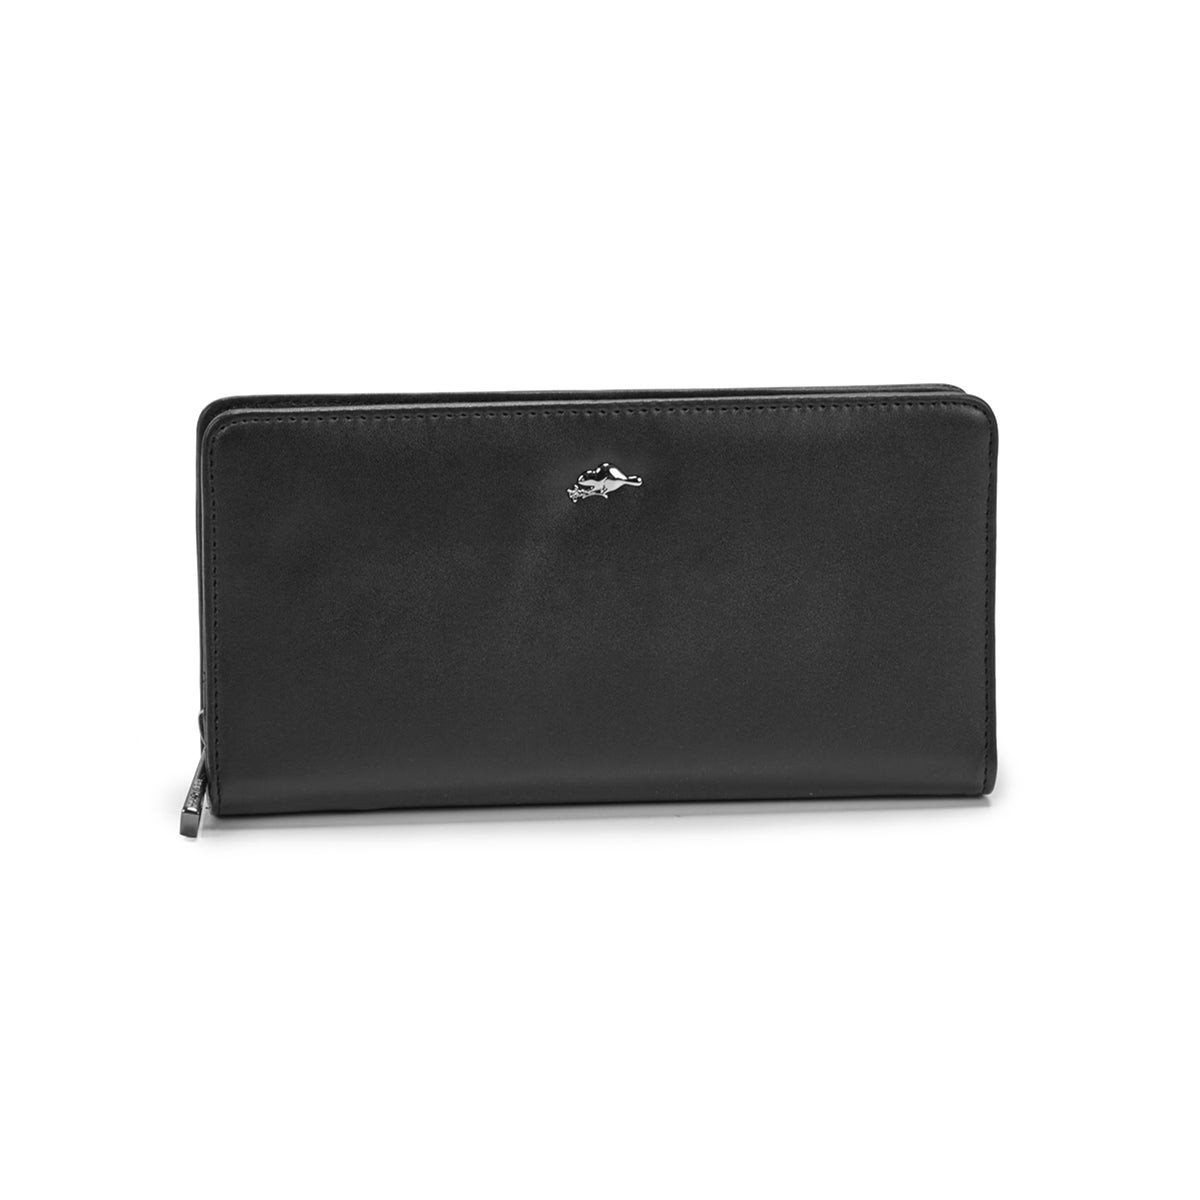 Women's CAVERN black clutch wallet